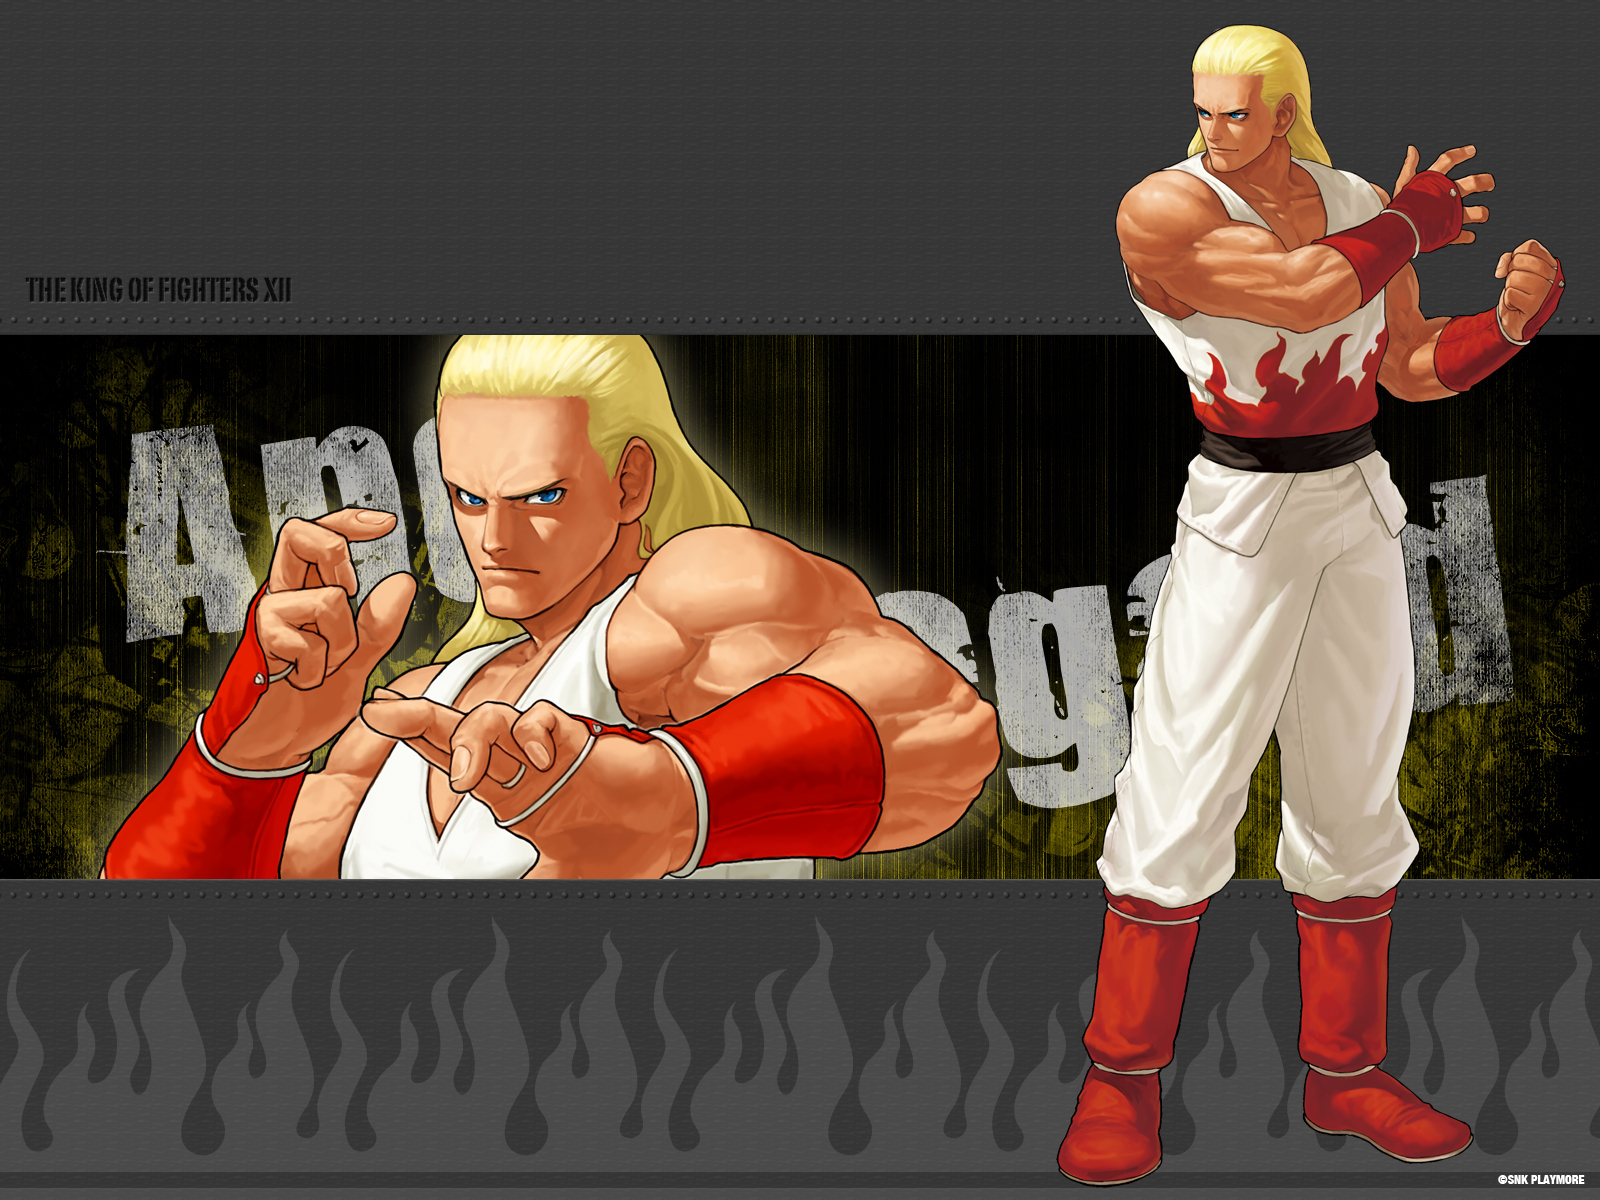 Kof Xii Andy The King Of Fighters Wallpaper 13368173 Fanpop